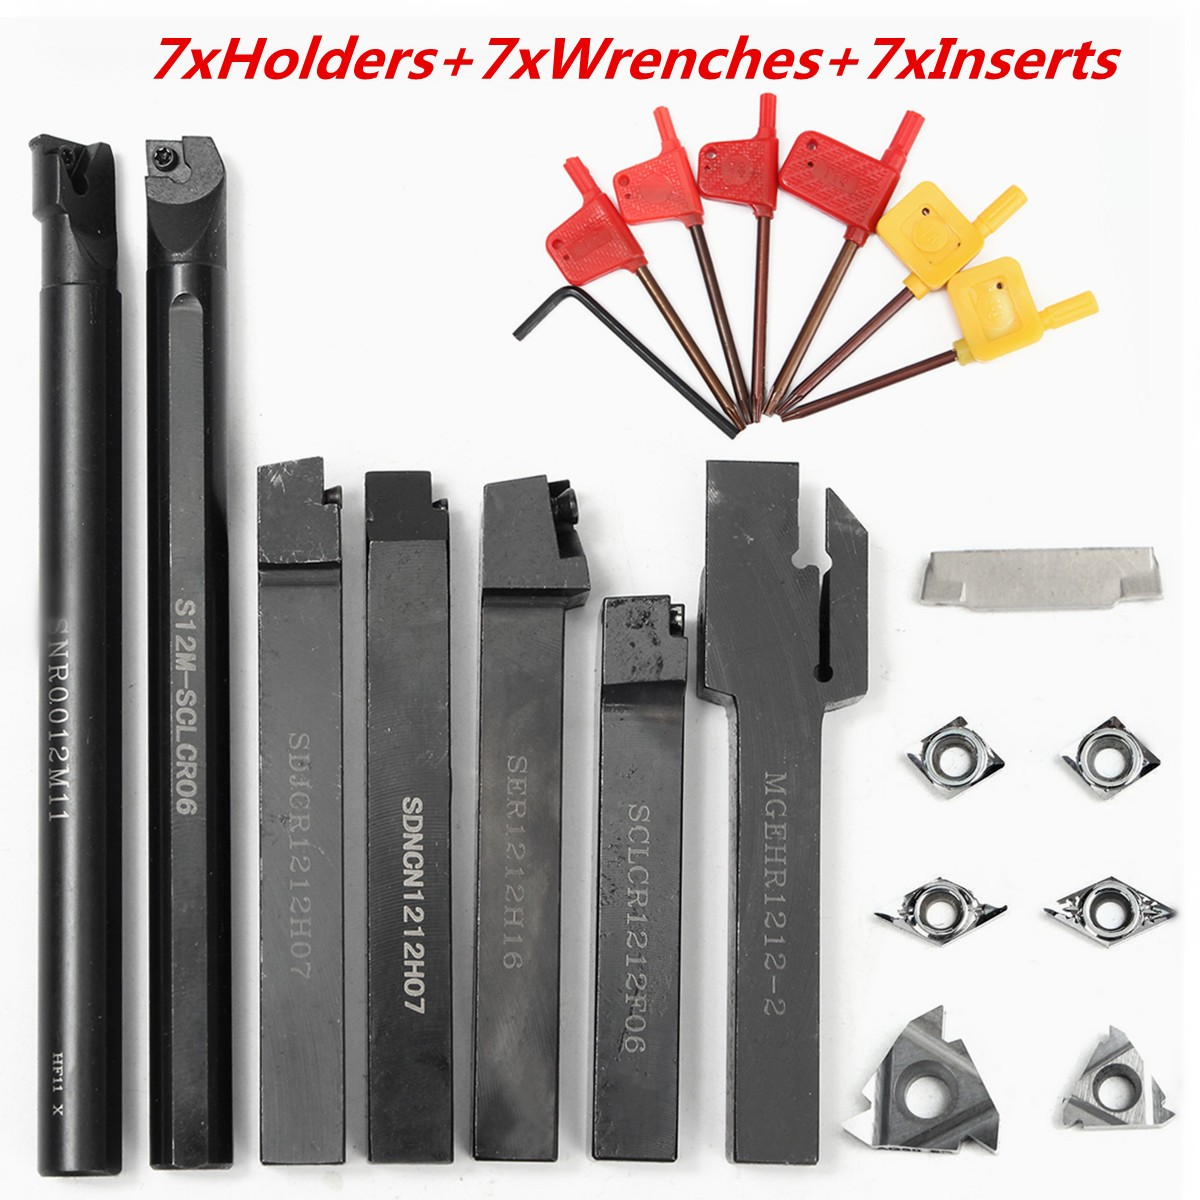 21Pcs/Set 12mm Shank Lathe Turning Tool Holder Boring Bar+ DCMT CCMT Carbide Insert + Wrench 5pcs 1 2 indexable turning tool insert mayitr c6 chipbreaker carbide lathe tool bit set for boring chamfering with hex wrench